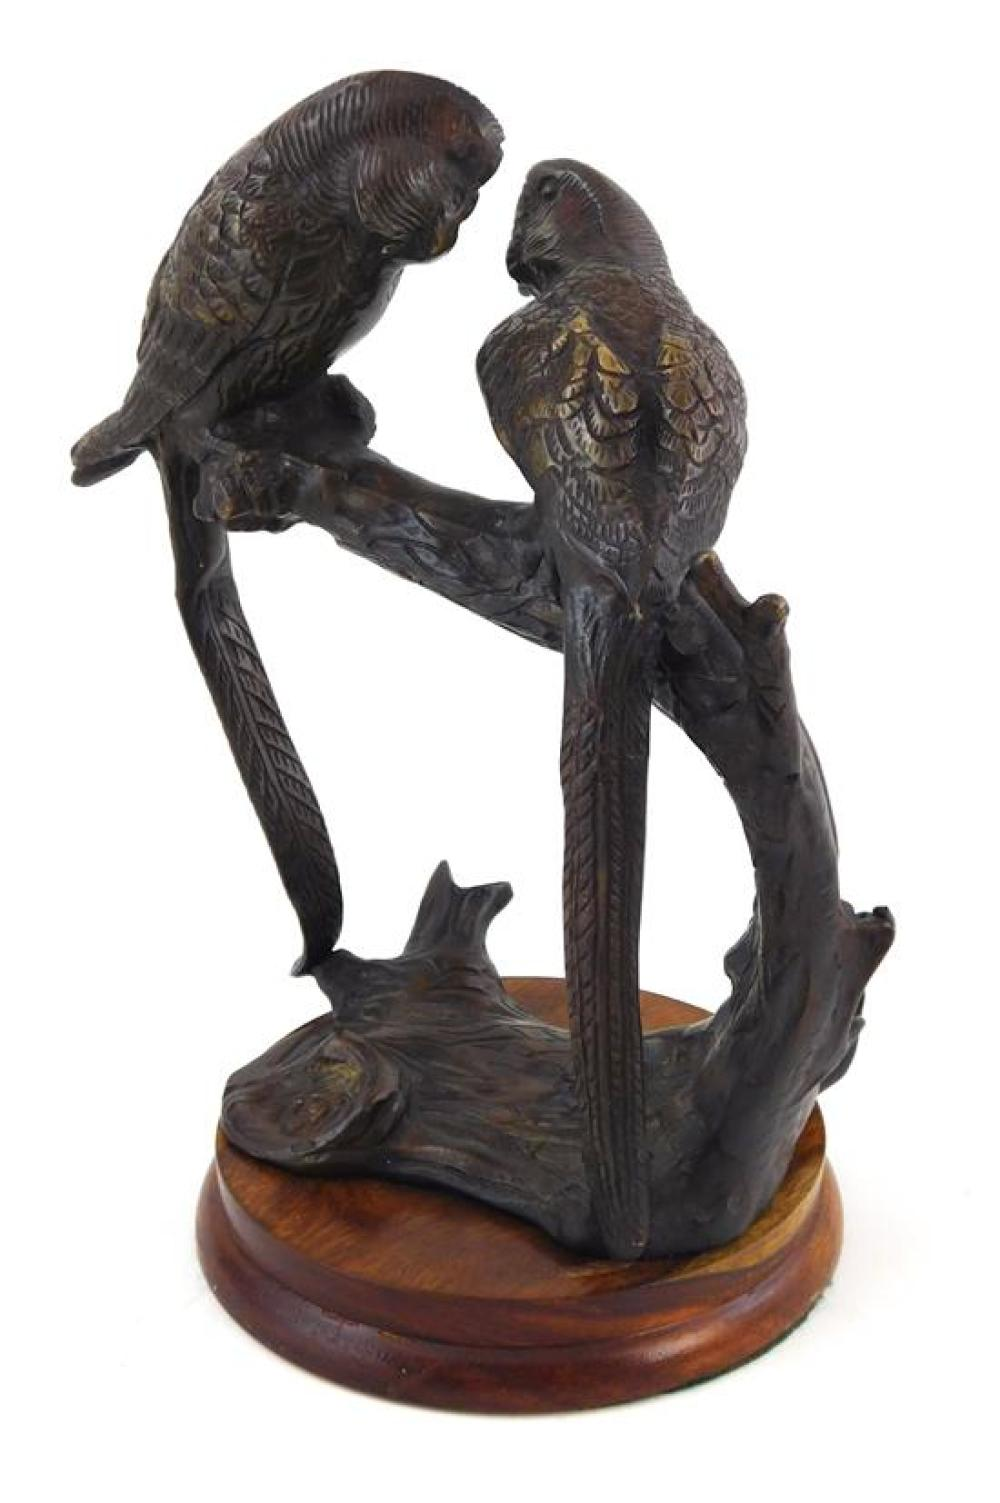 19th/20th C. bronze sculpture depicting pair long-tailed parakeets roosting on branch, both birds elevated on naturalistically molde...